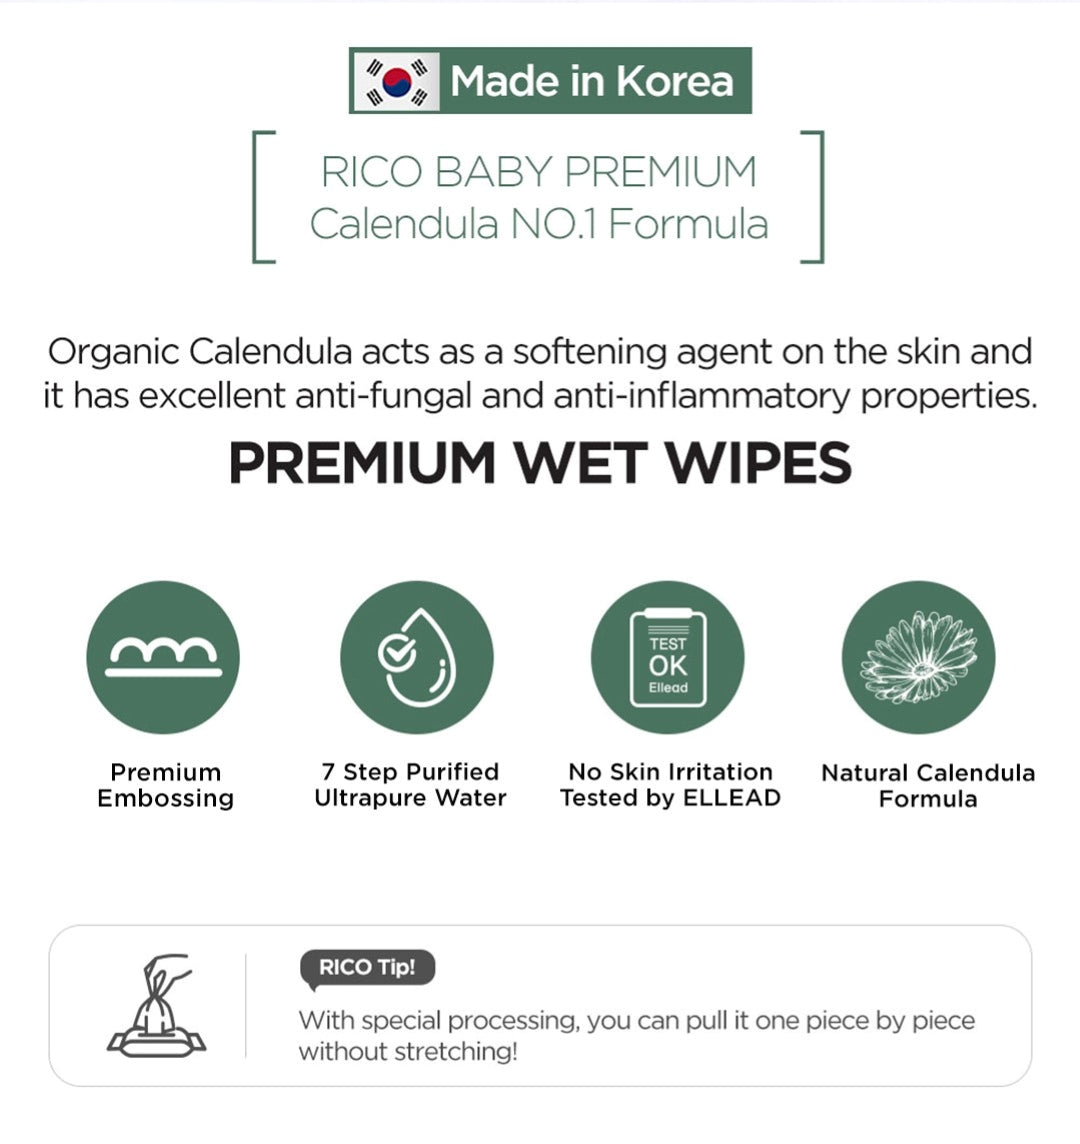 RICO Baby Premium Wet Wipes Highlights